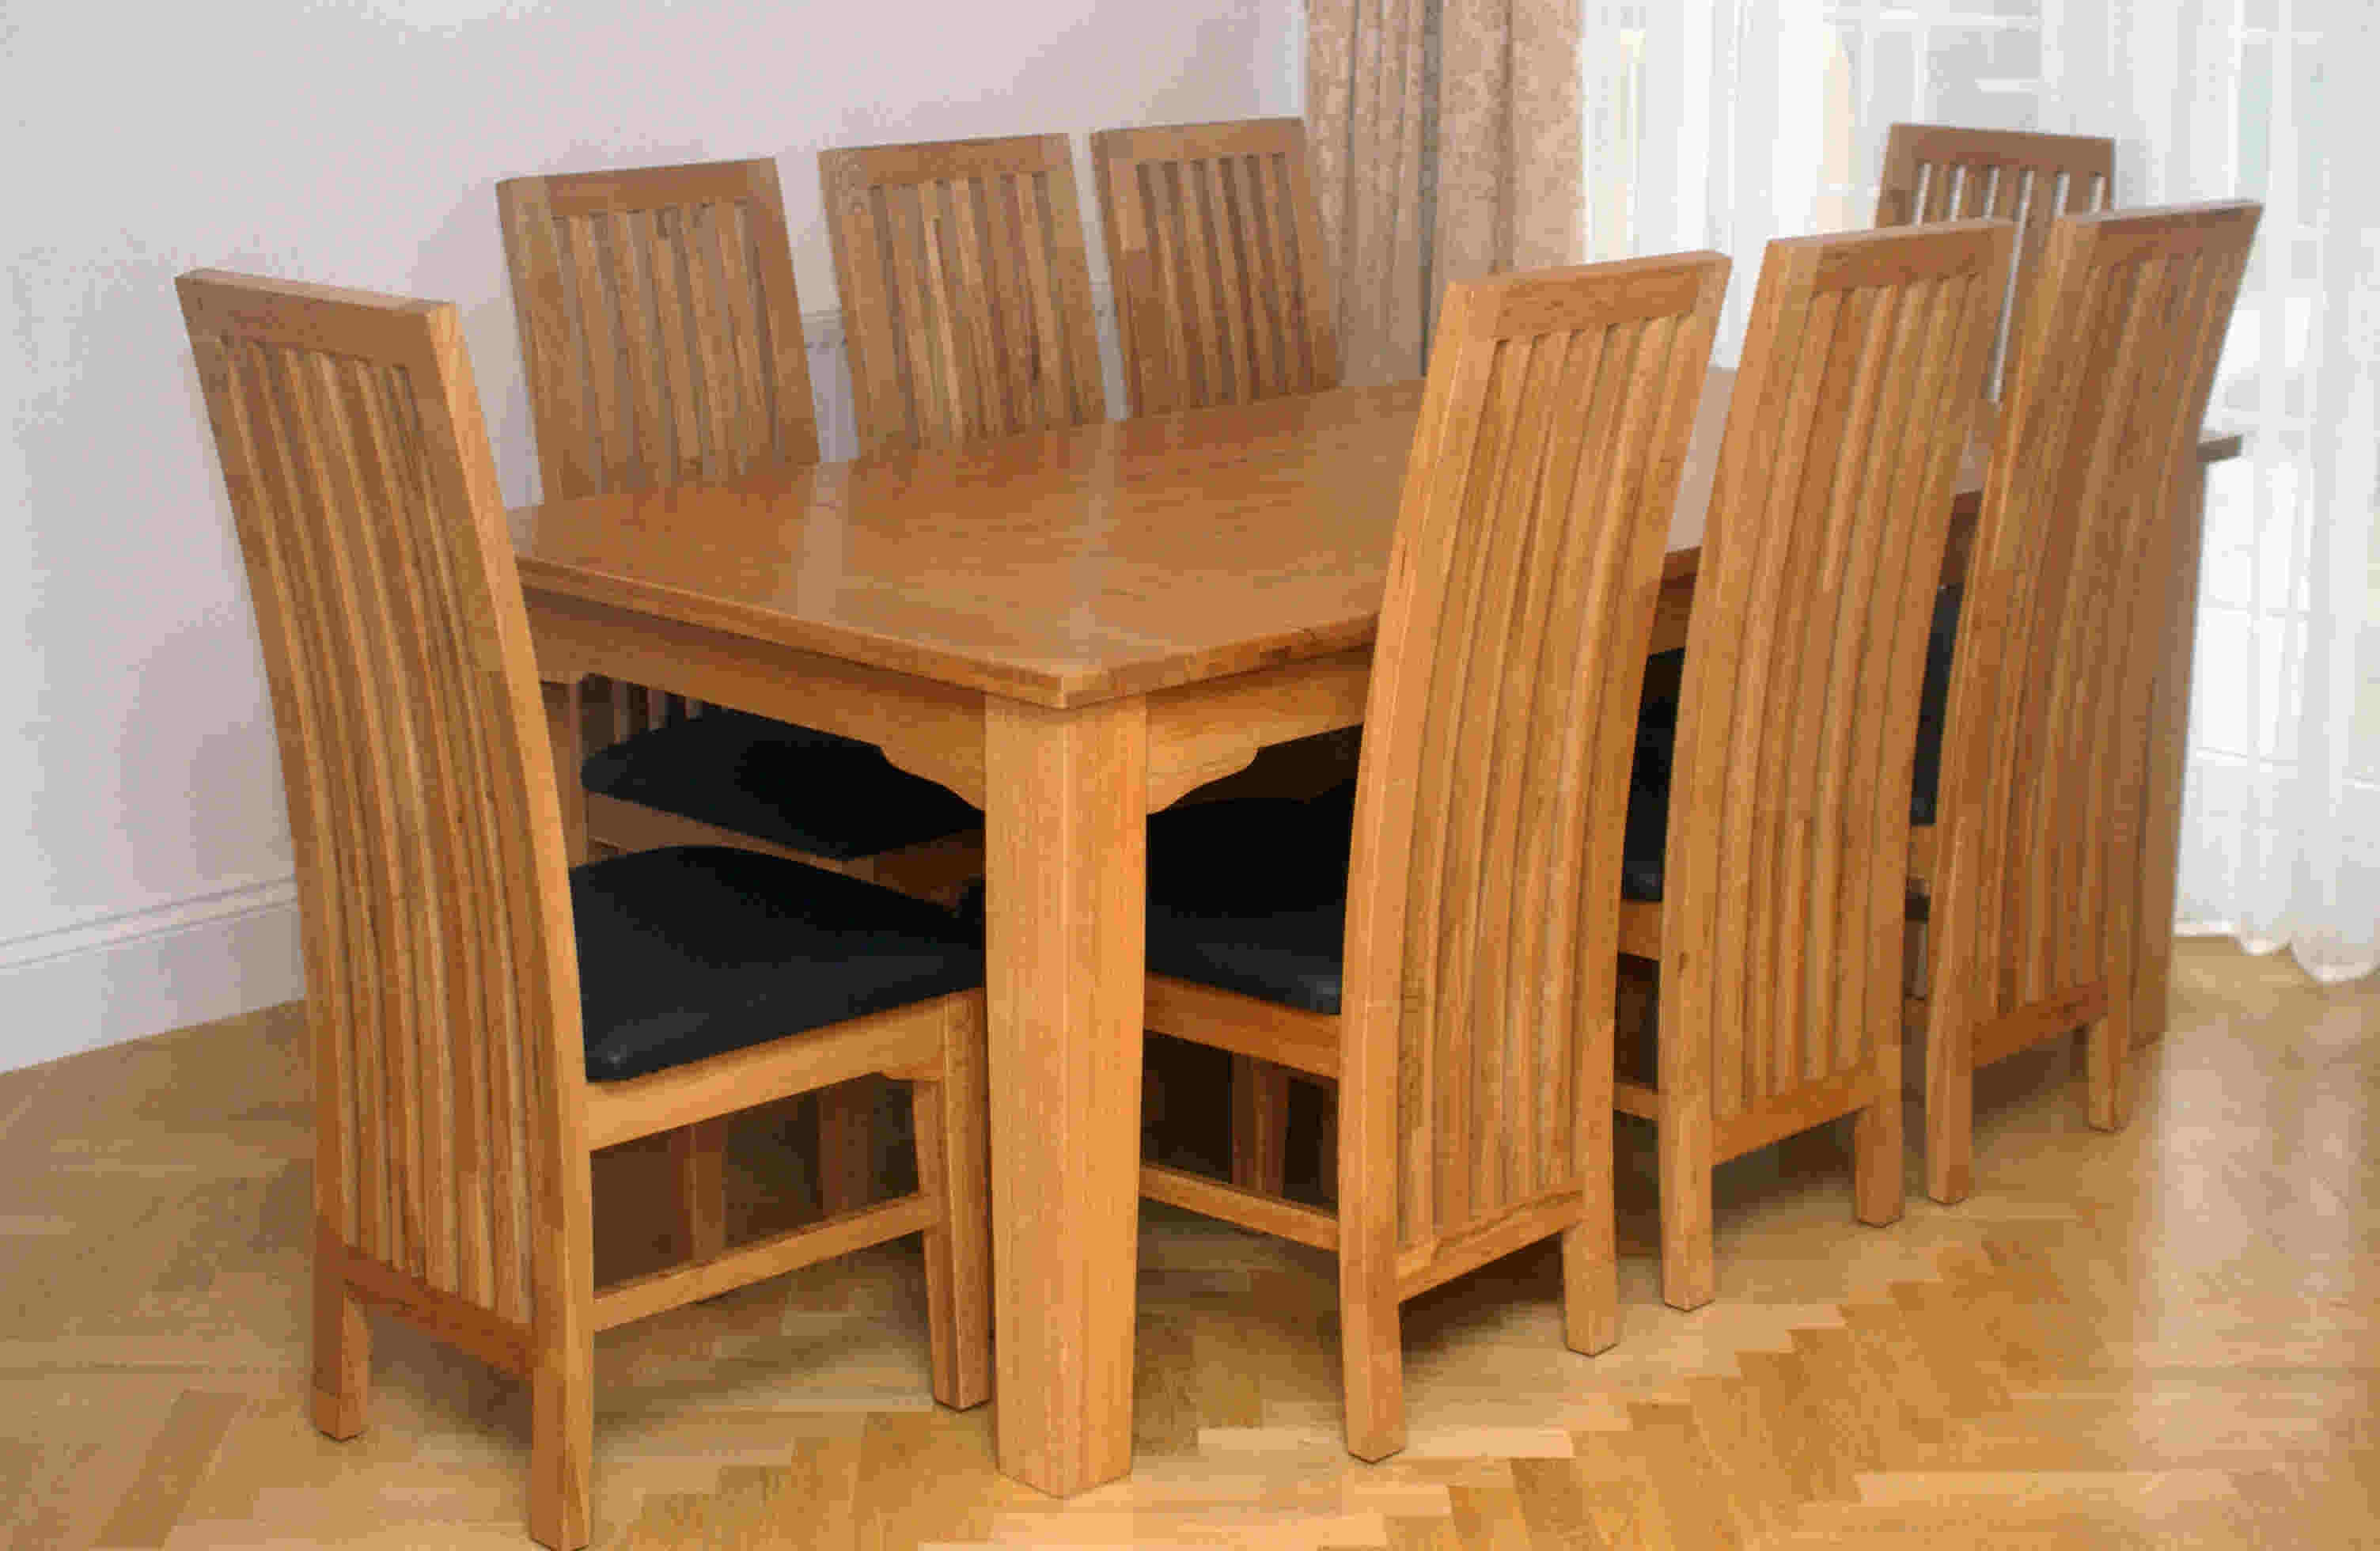 My Weblog: Buying New Oak Dining Room Furniture